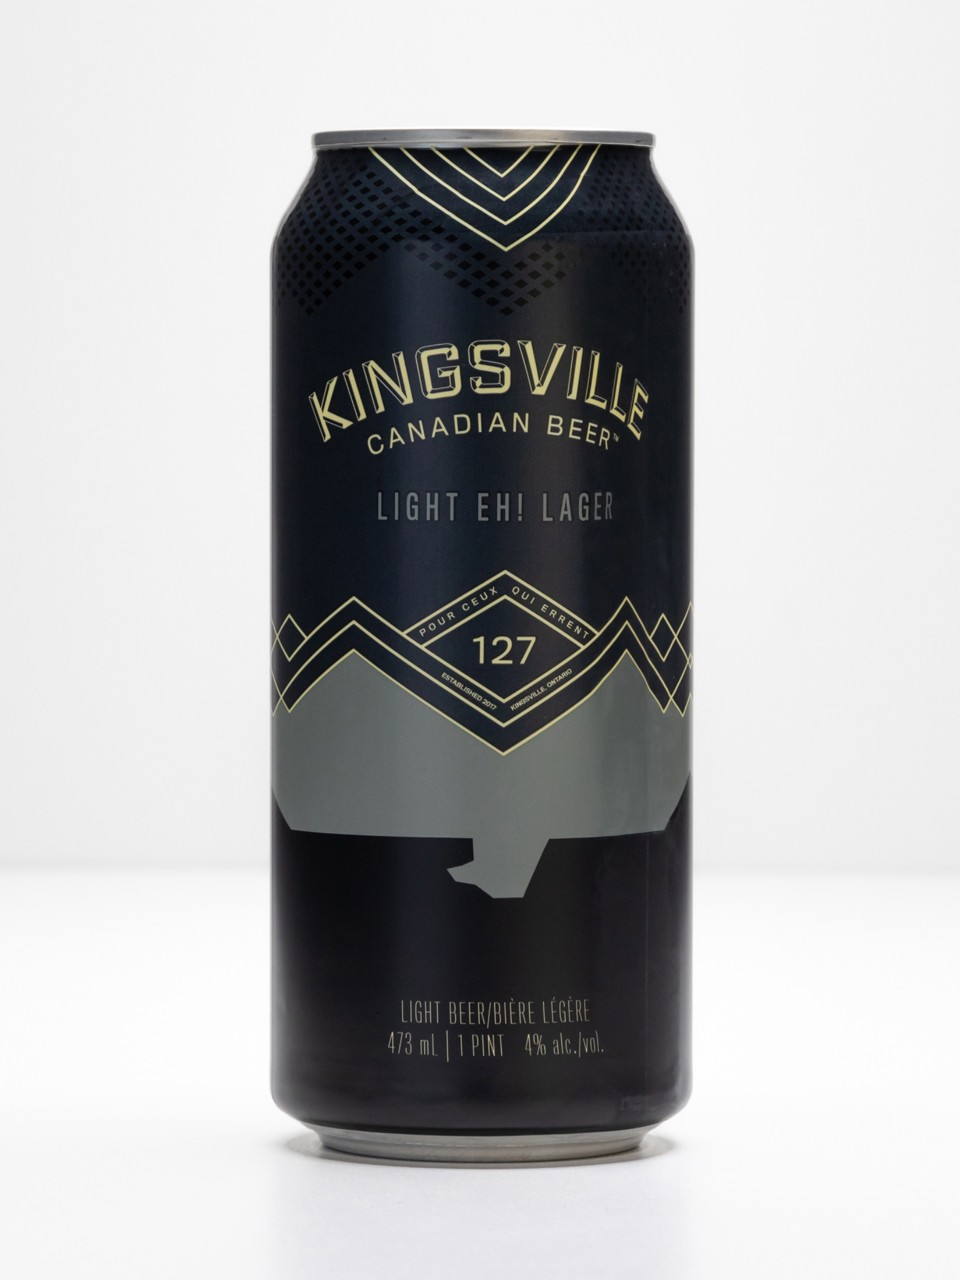 Kingsville Brewery Light Eh! Lager from LCBO